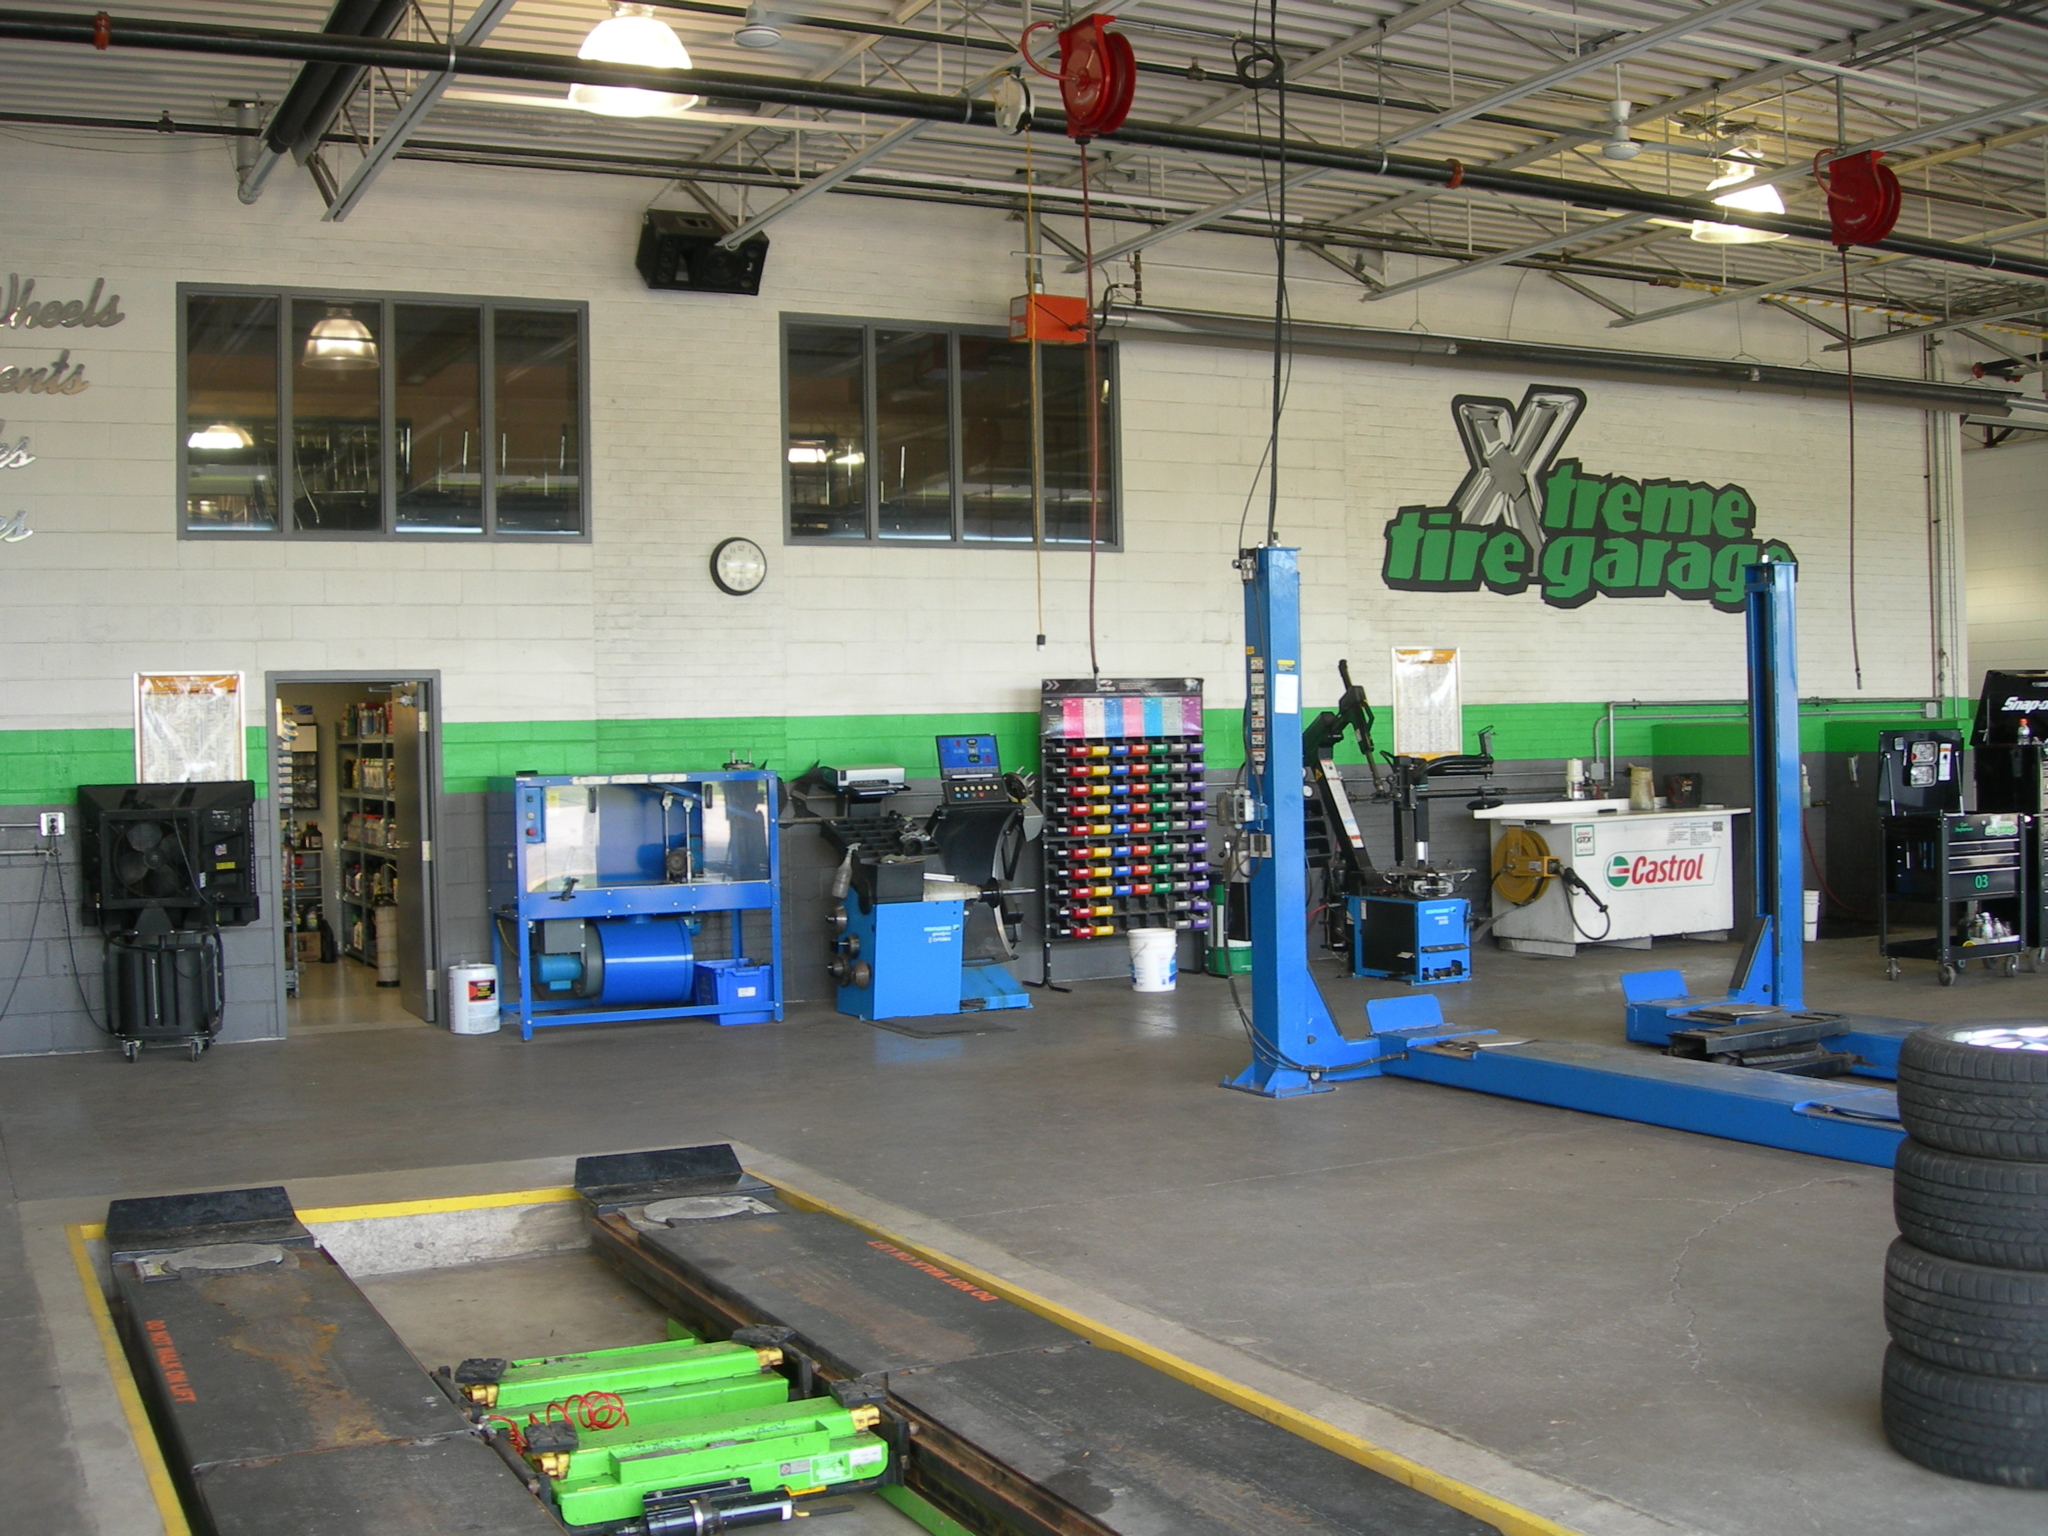 Xtreme Tire Garage Inc in Mississauga